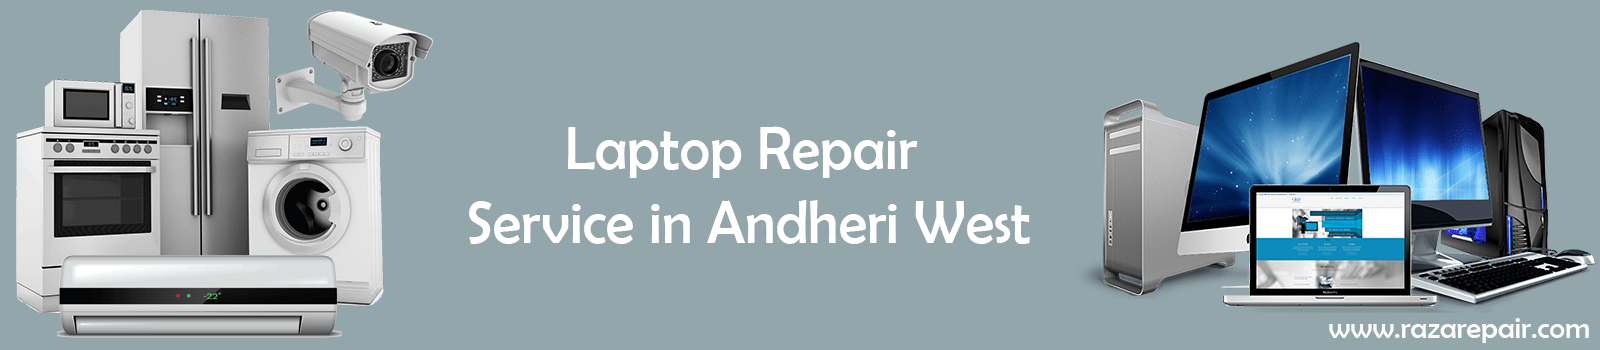 Laptop Repair Service in Andheri West | Call Now 8655112626